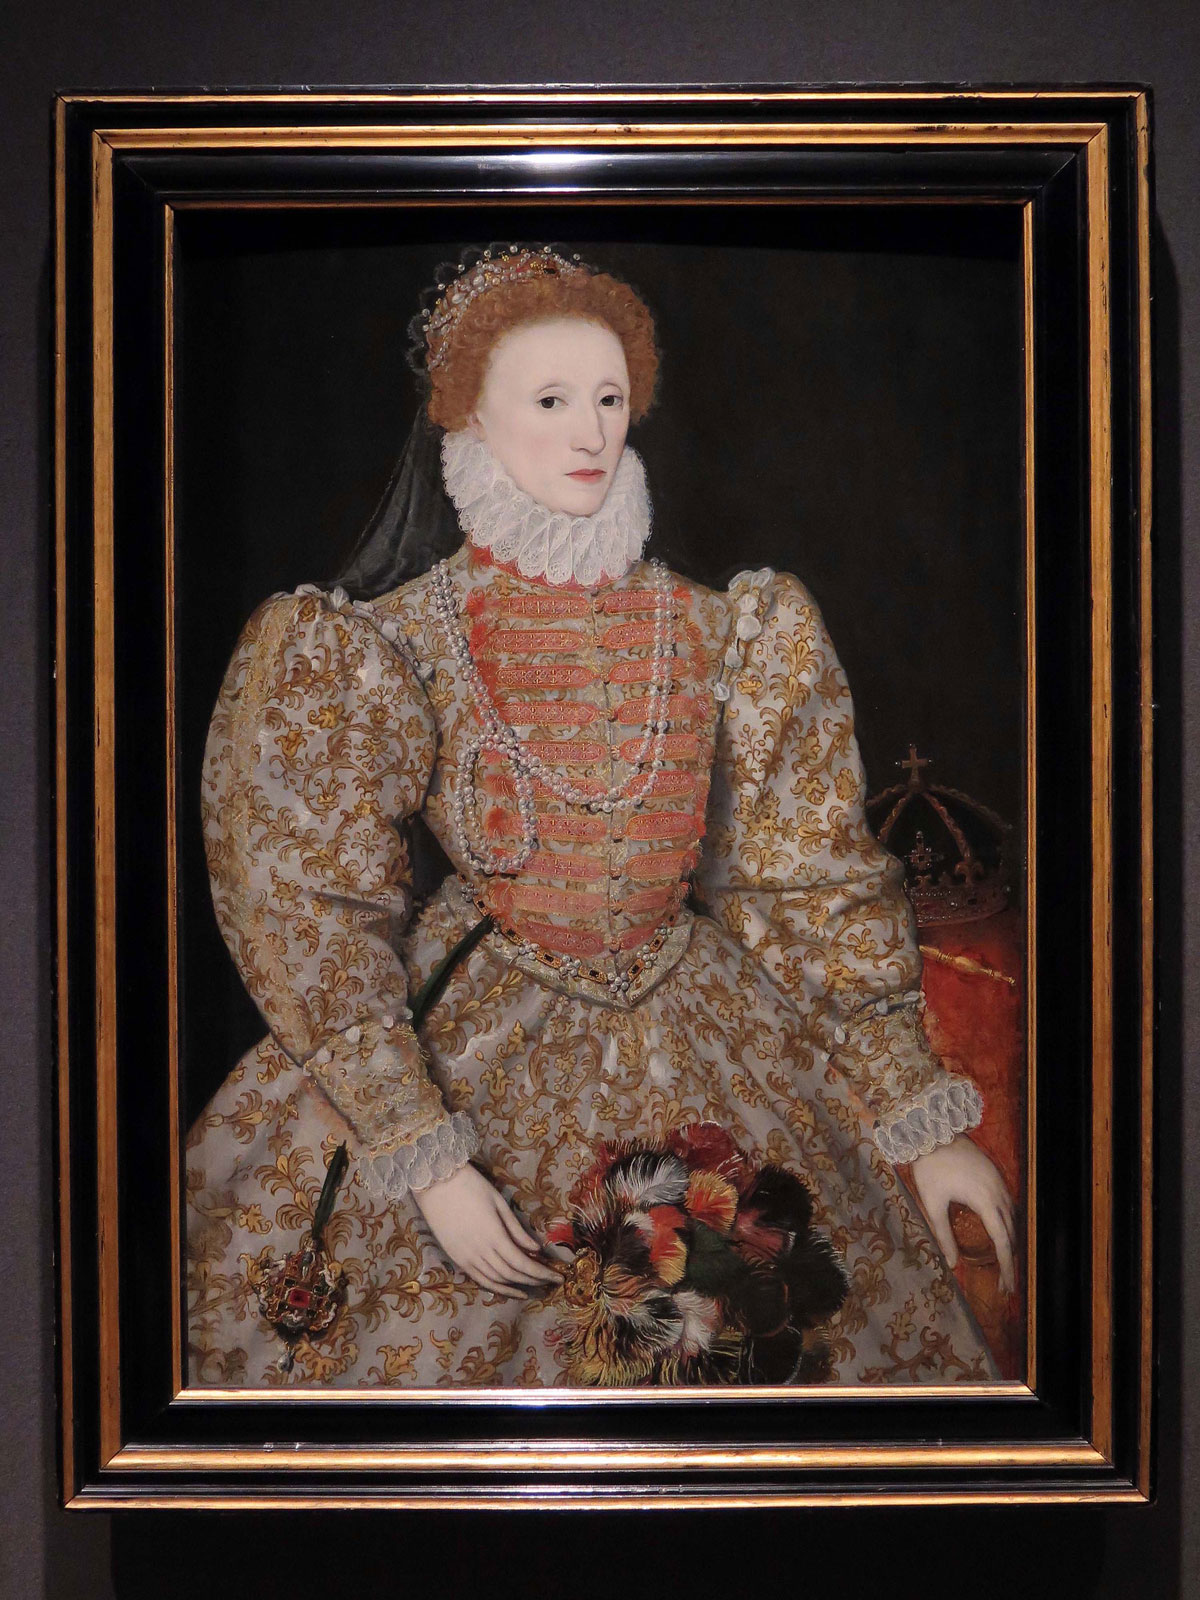 Elizabeth I by unknown continental artist (c1575)